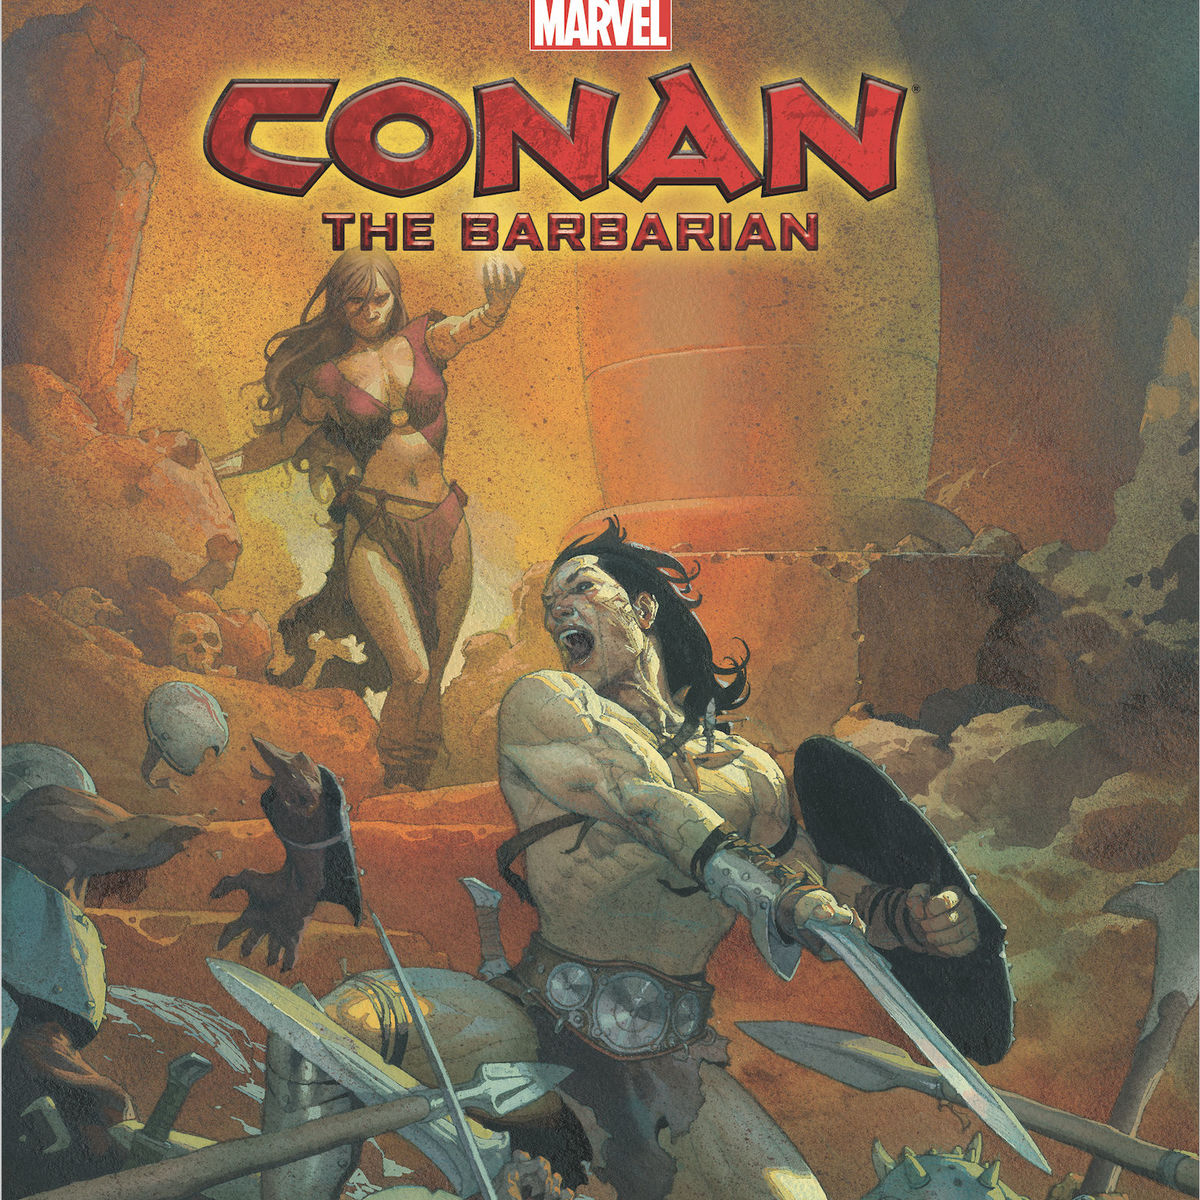 Watch Marvel's 'Conan the Barbarian' launch trailer